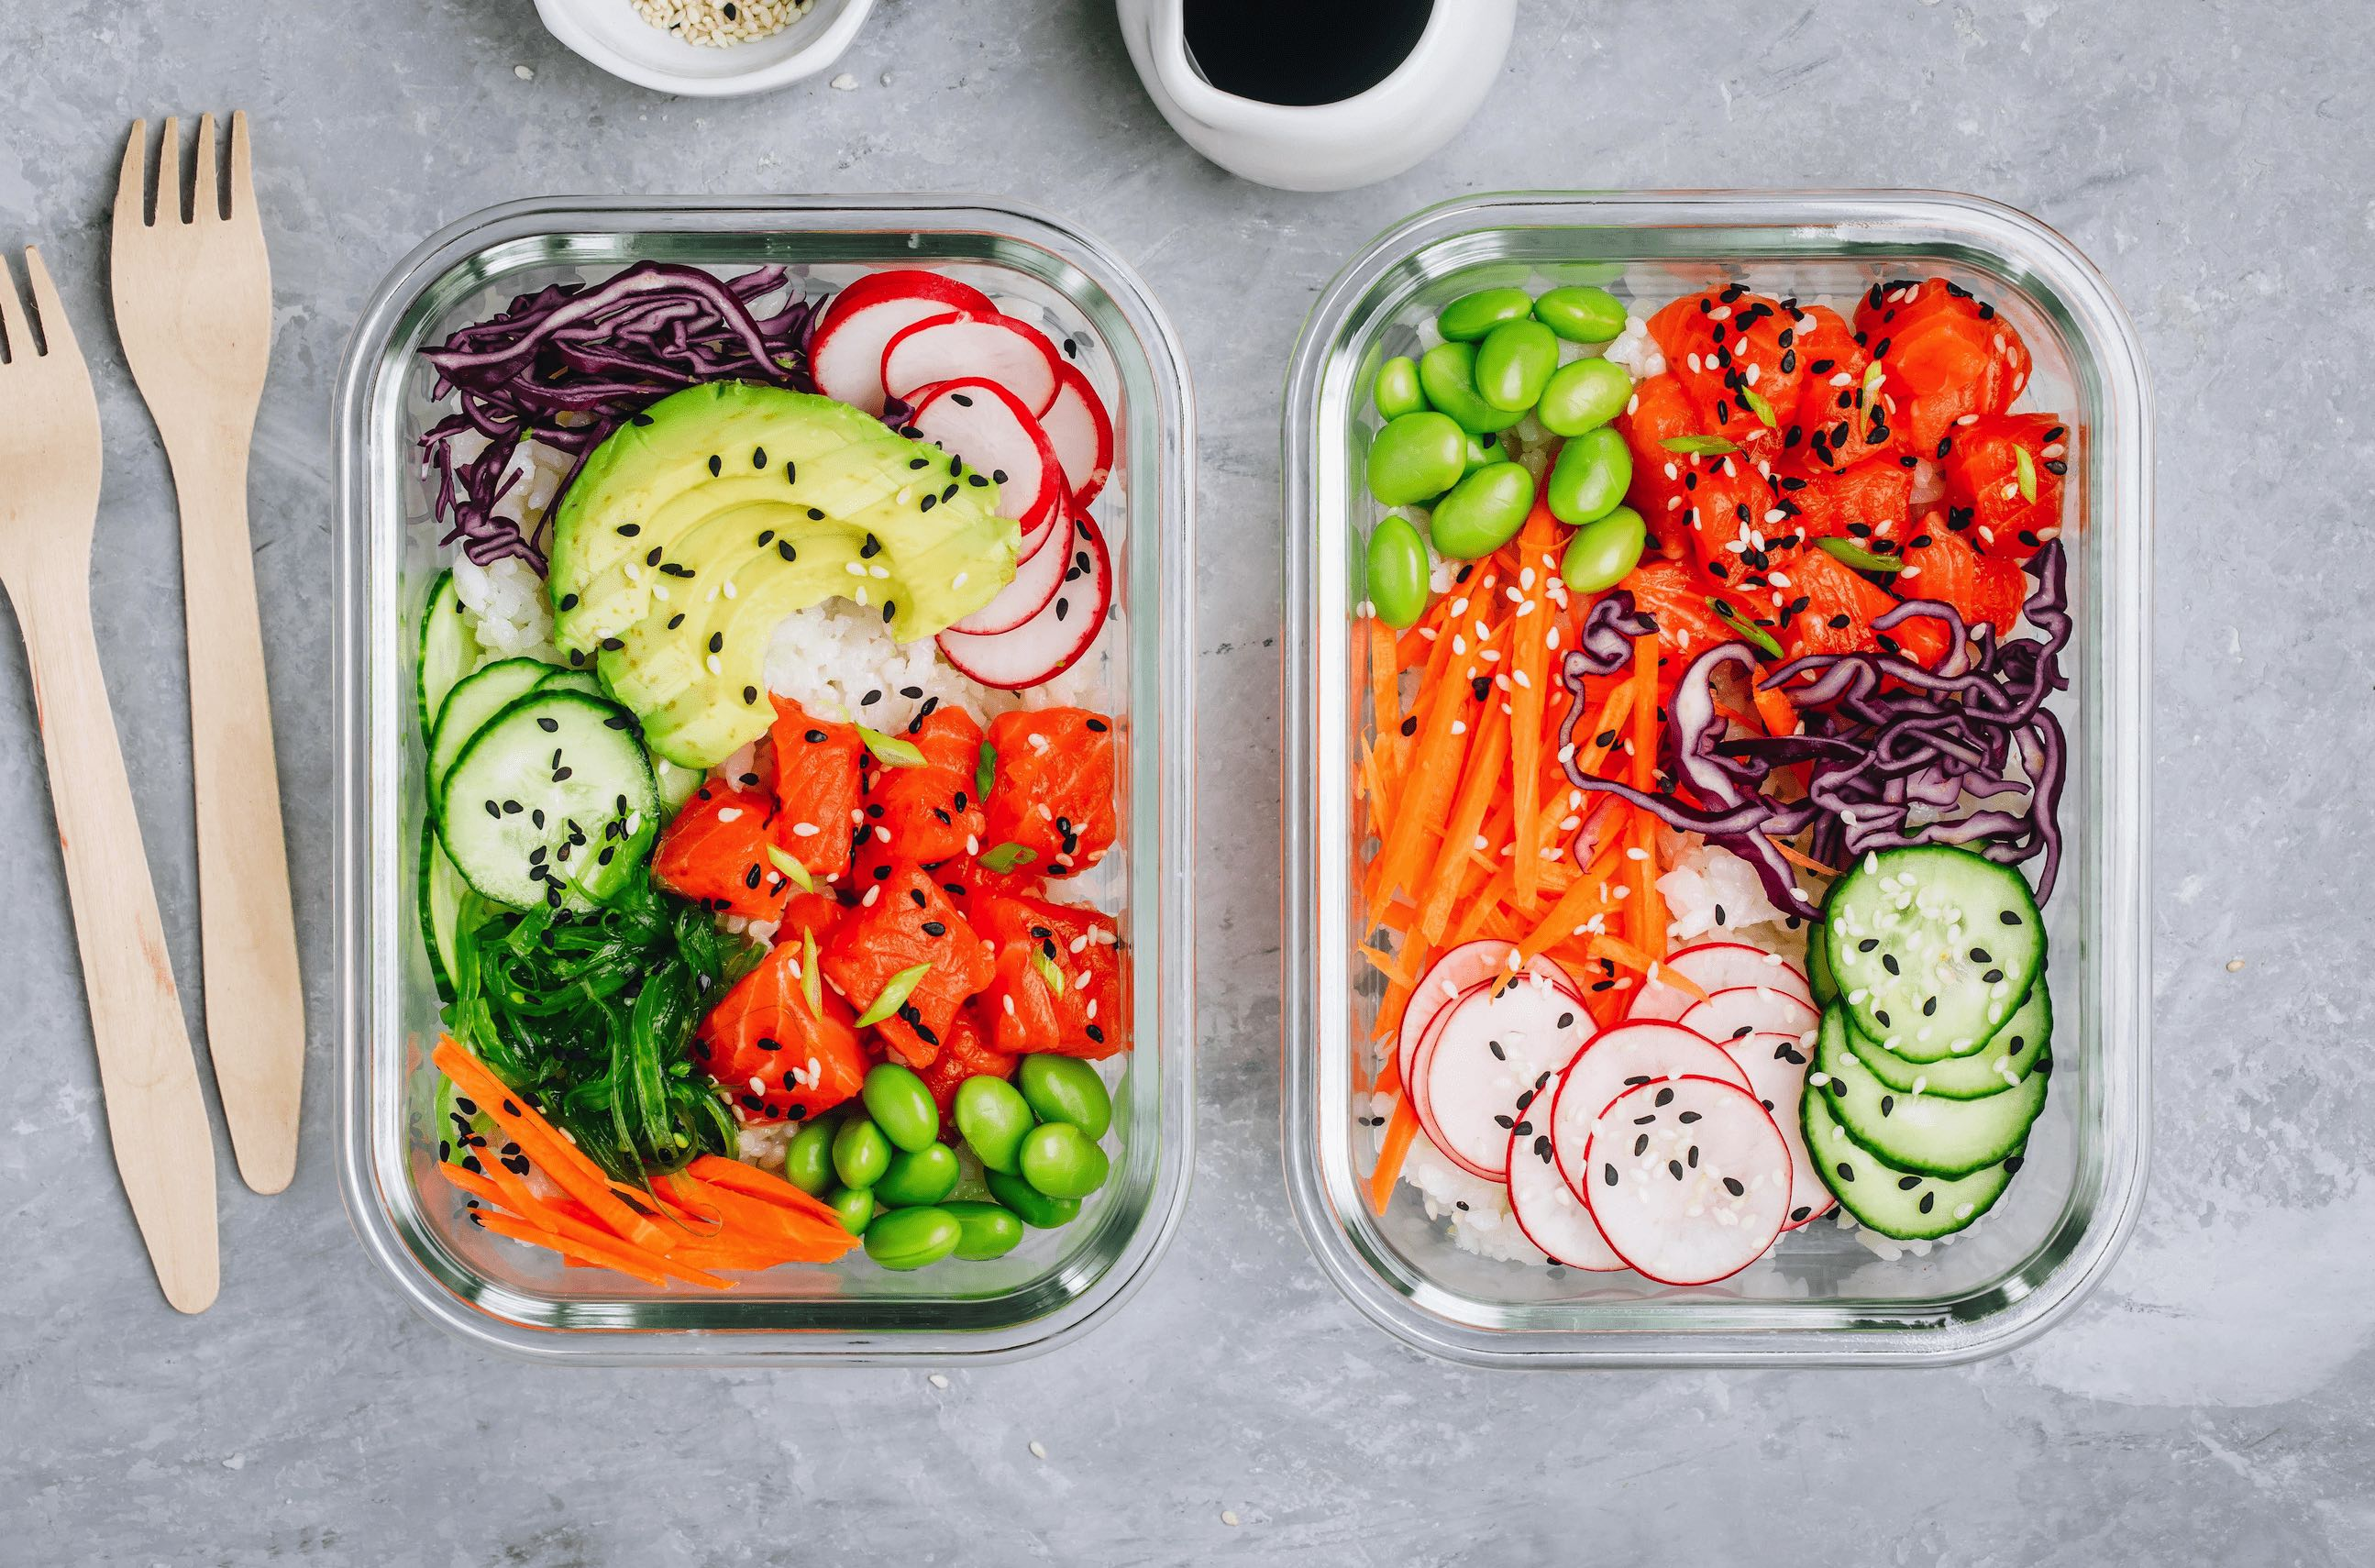 Why is the Meal Prep Business most lucrative in 2021?